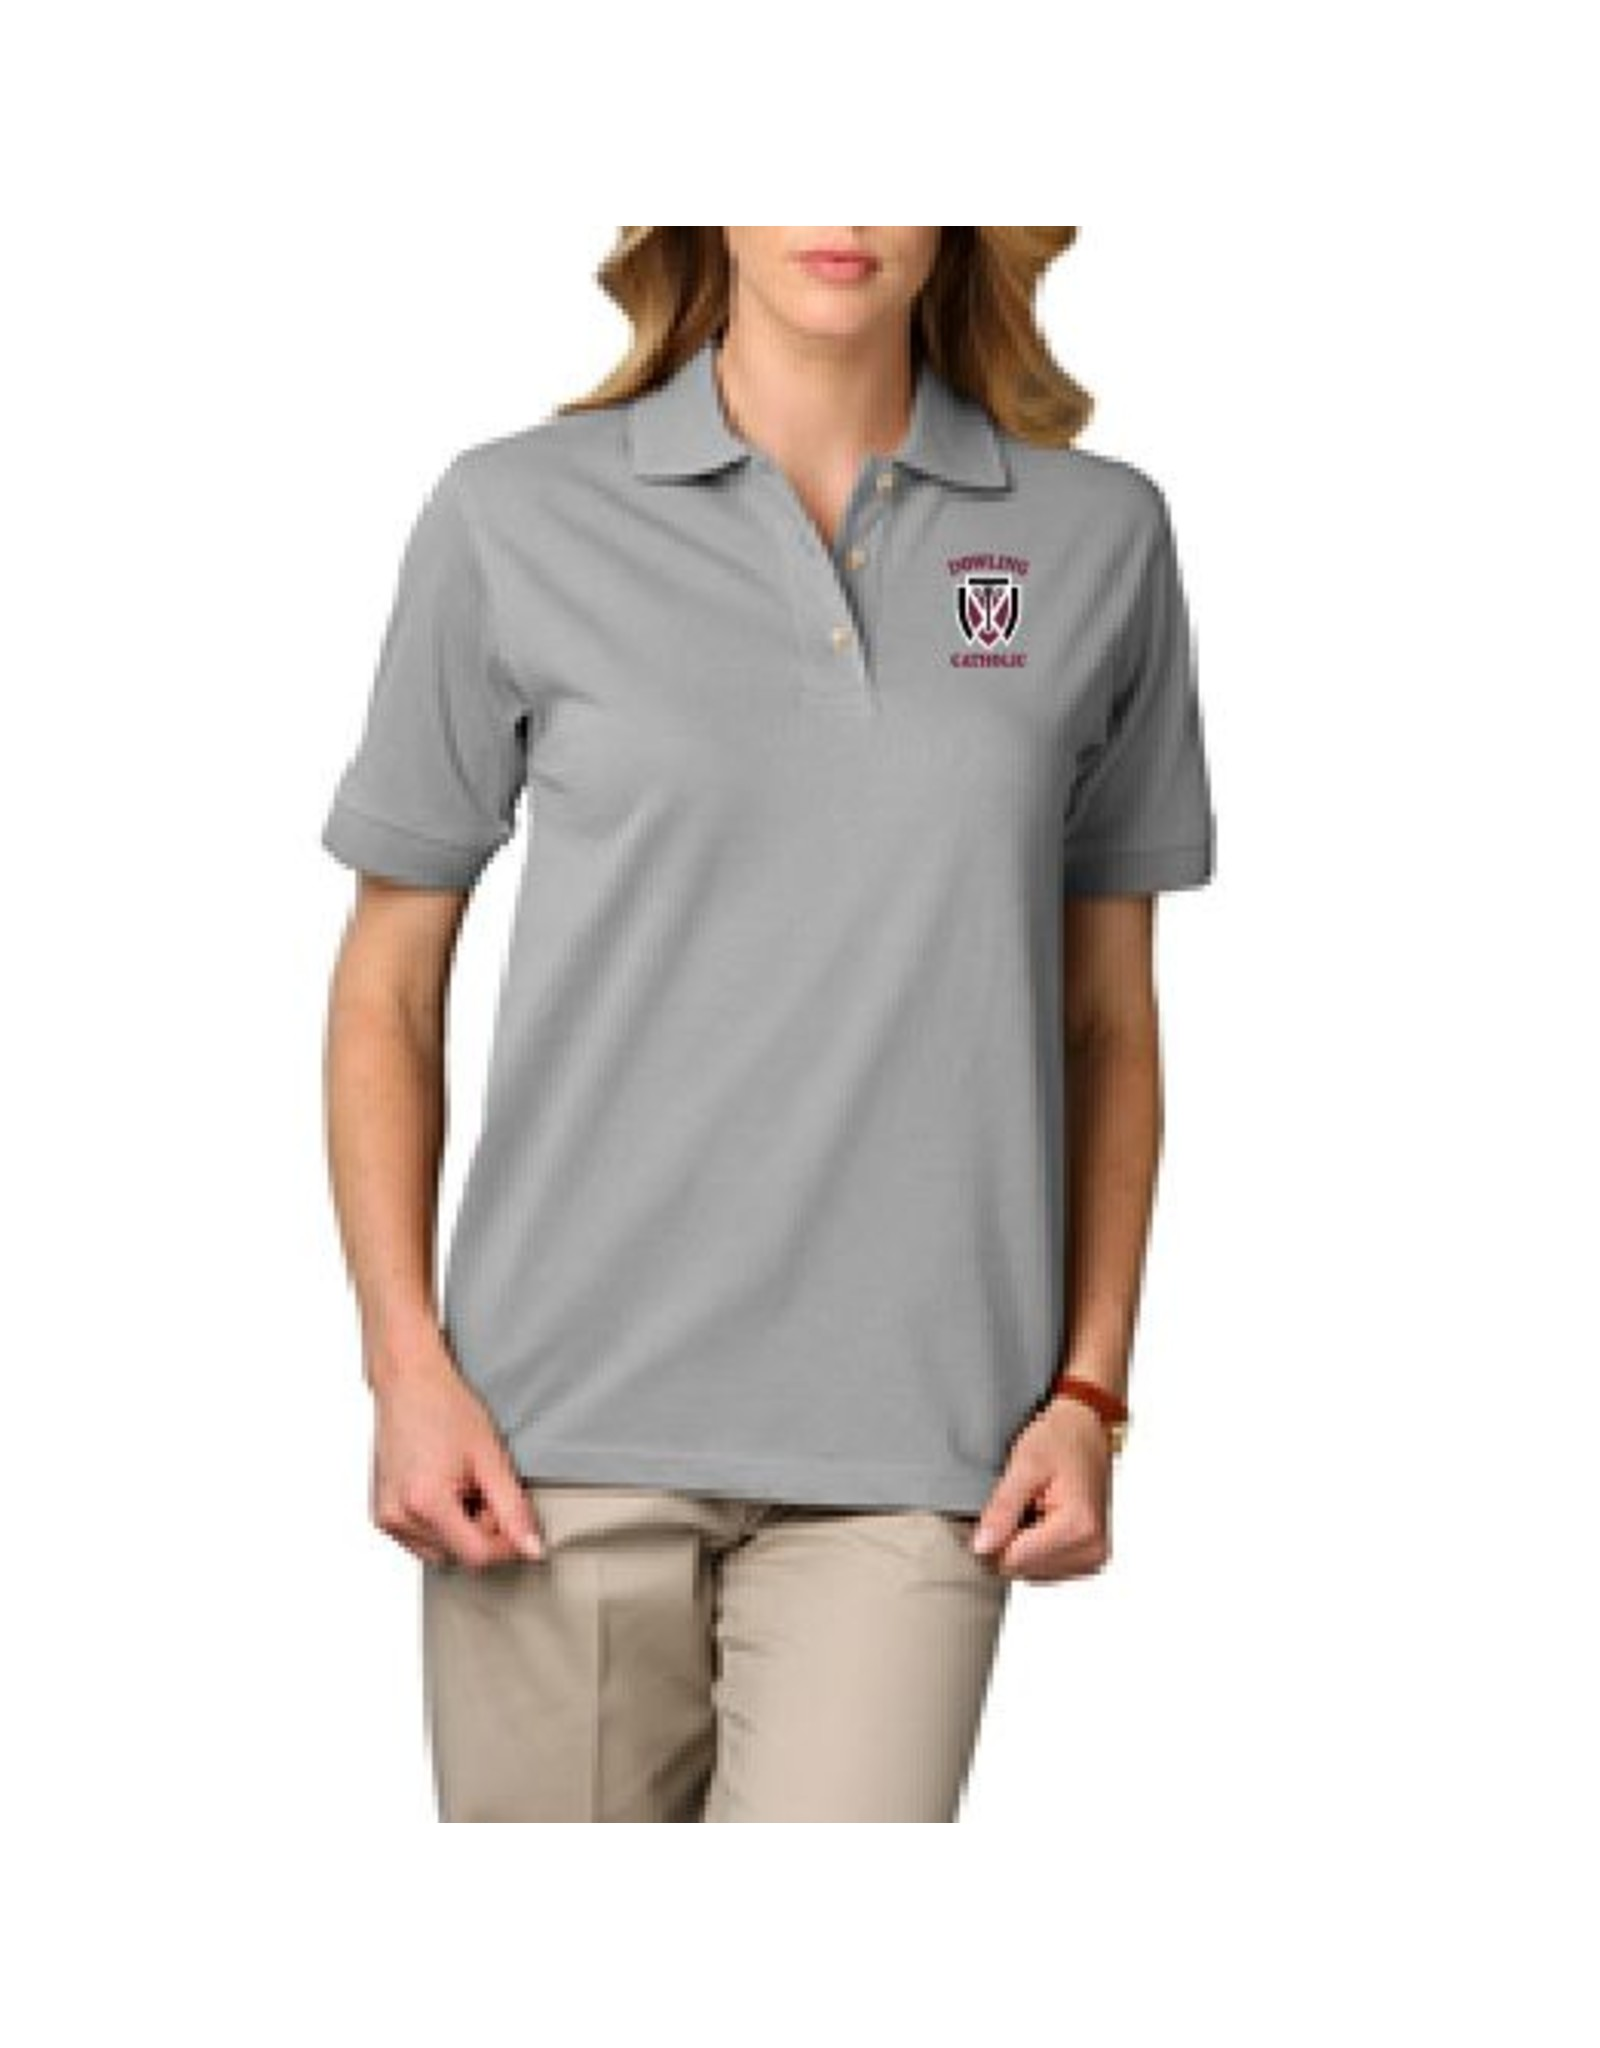 Blue Generation Women's Short Sleeve Cotton Polo - ONLINE